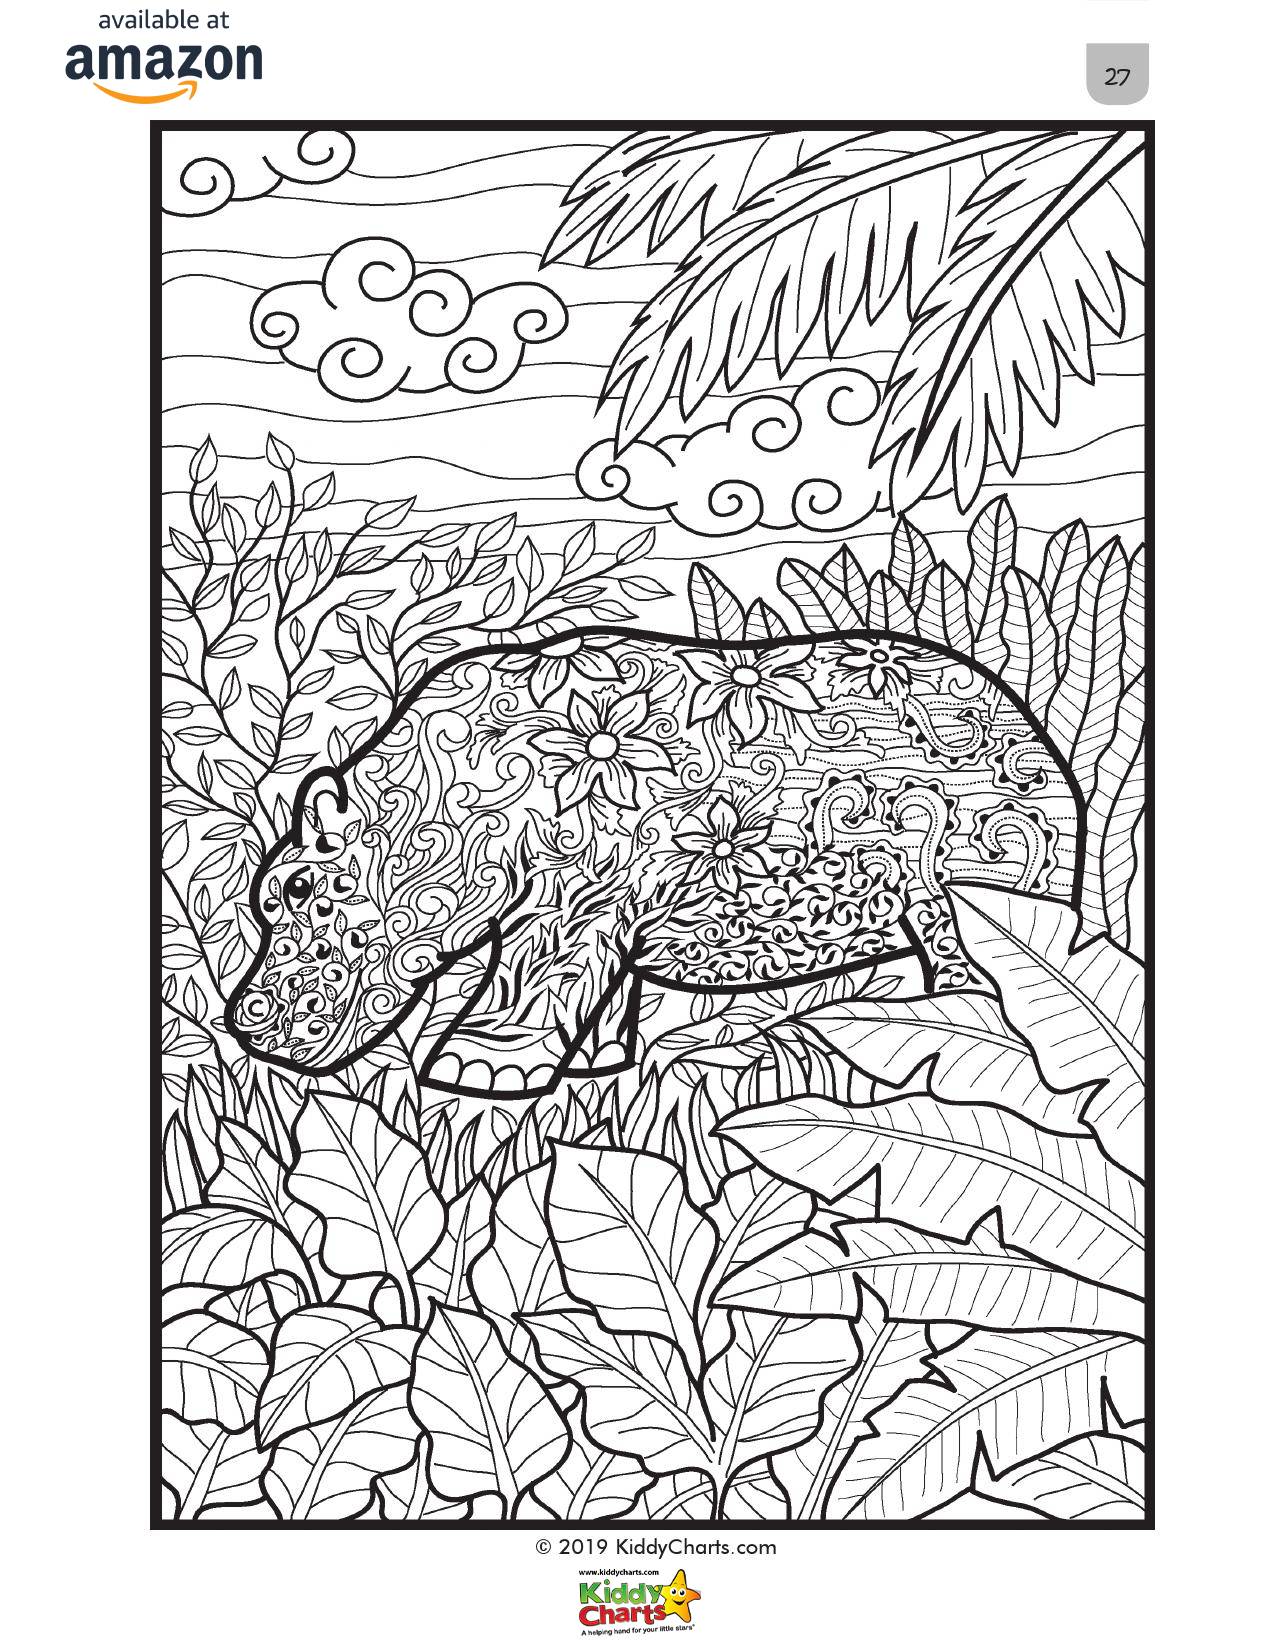 Our Hippo mindful coloring page for adults, part of our mindful coloring book. Get this for free and check out the rest! #coloring #colouring #animals #kids #adultcoloring #kidscoloring #hippos #nature #coloringbook #coloringbooks #freestuff